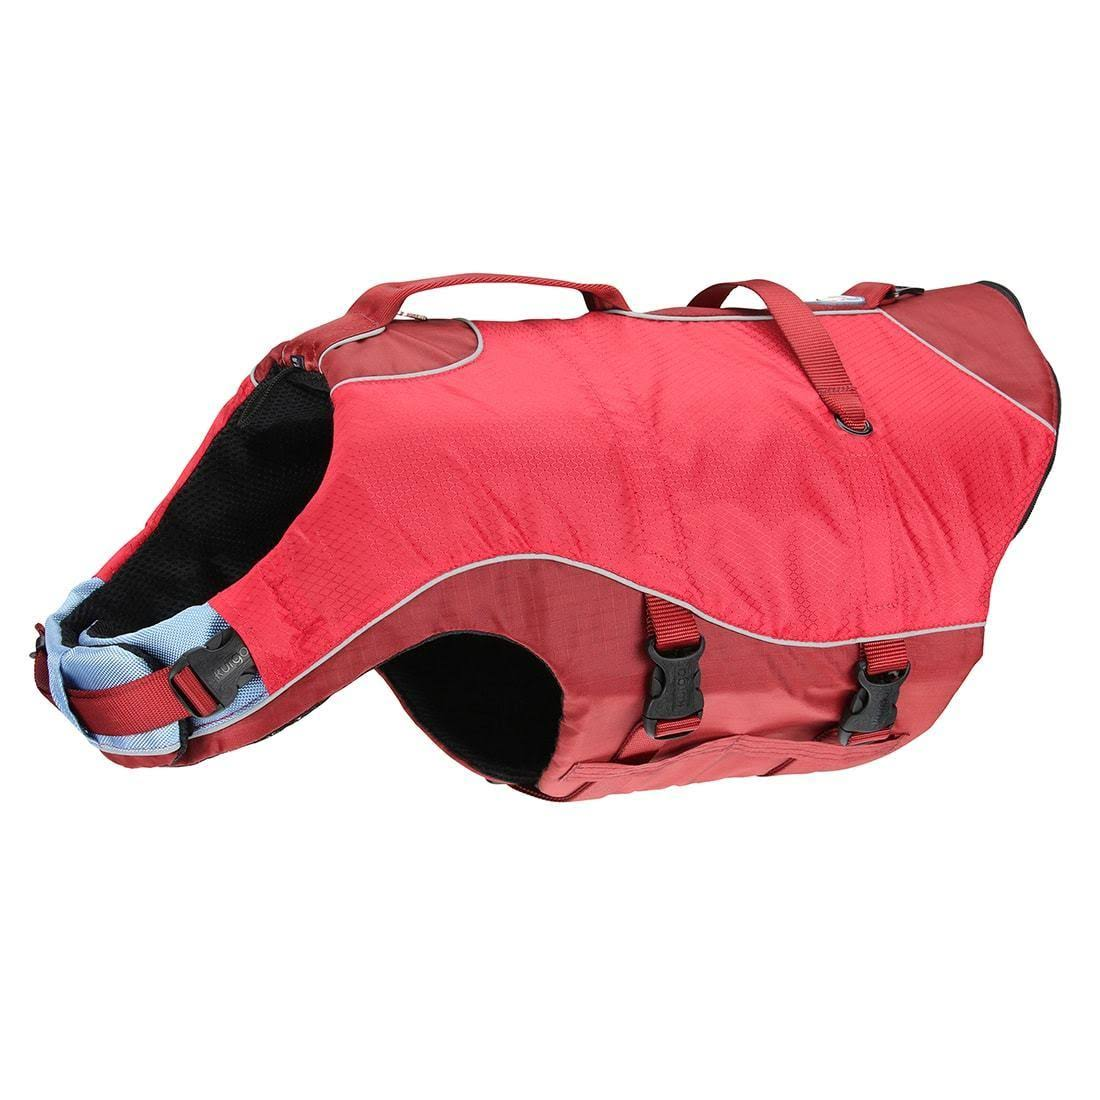 Kurgo Surf n' Turf Dog Lifejacket and Coat - Red, Medium